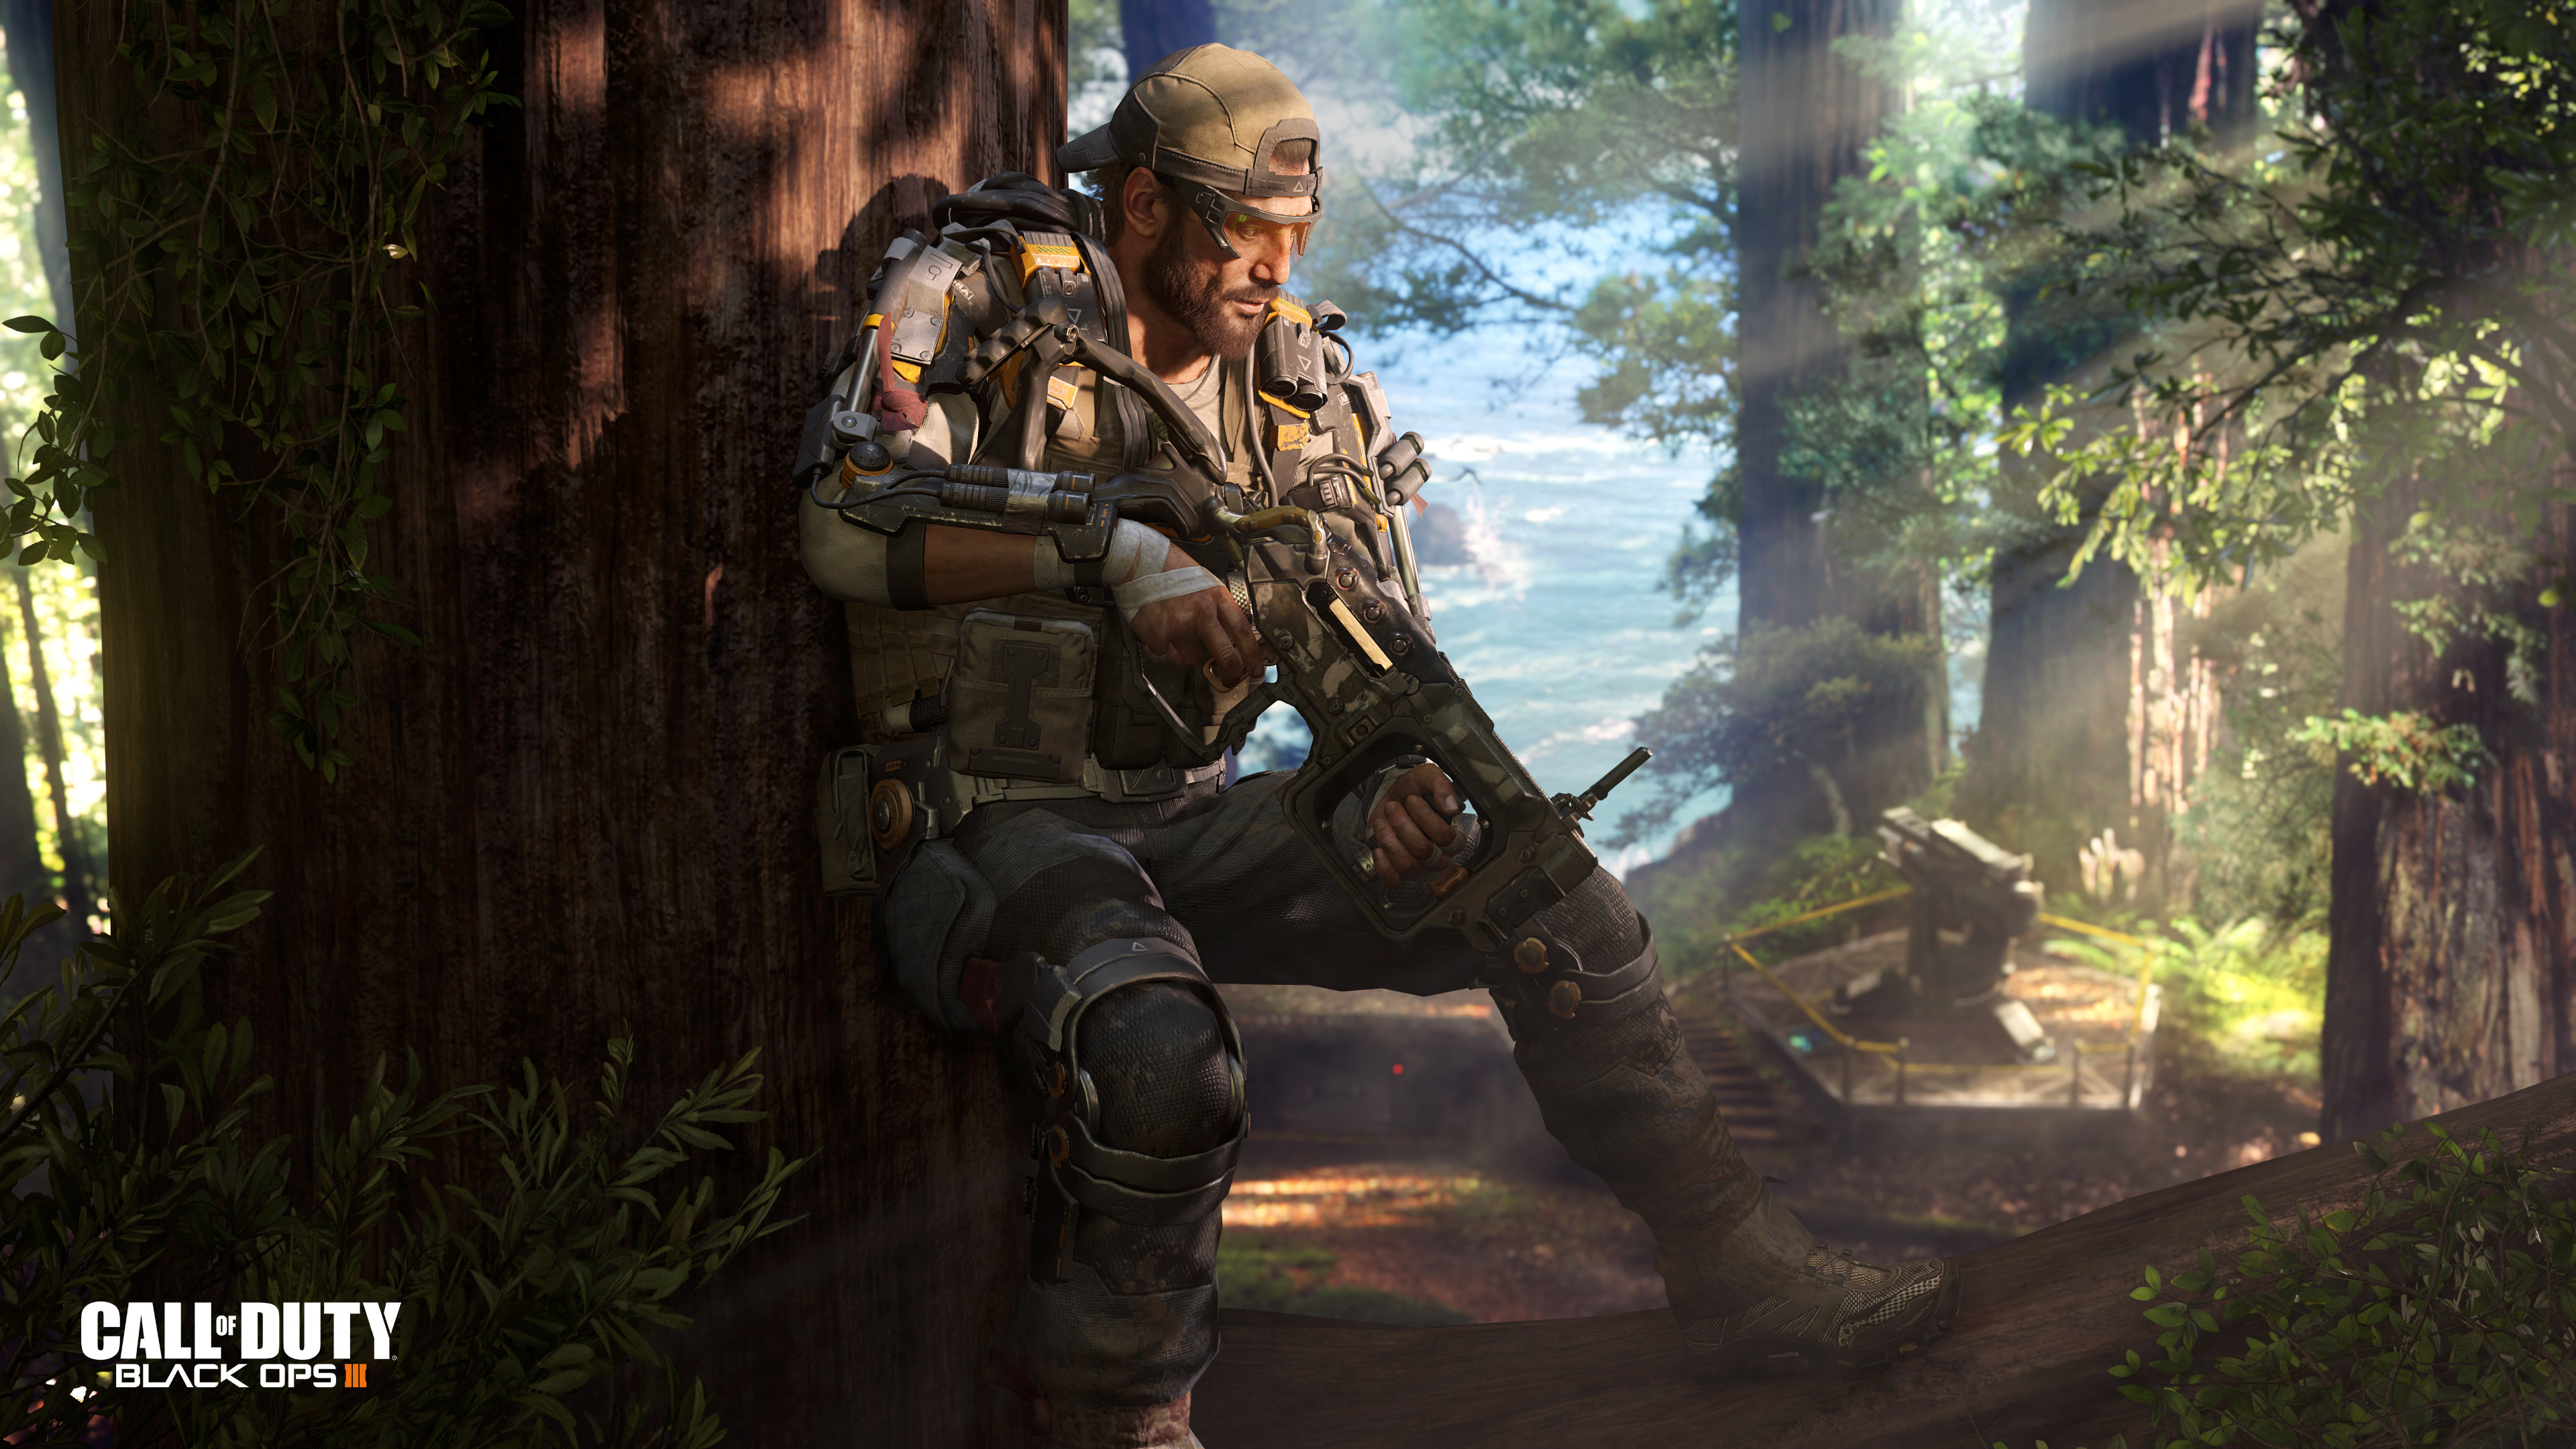 Best Call Of Duty Black Ops 3 Background Id271001 For High